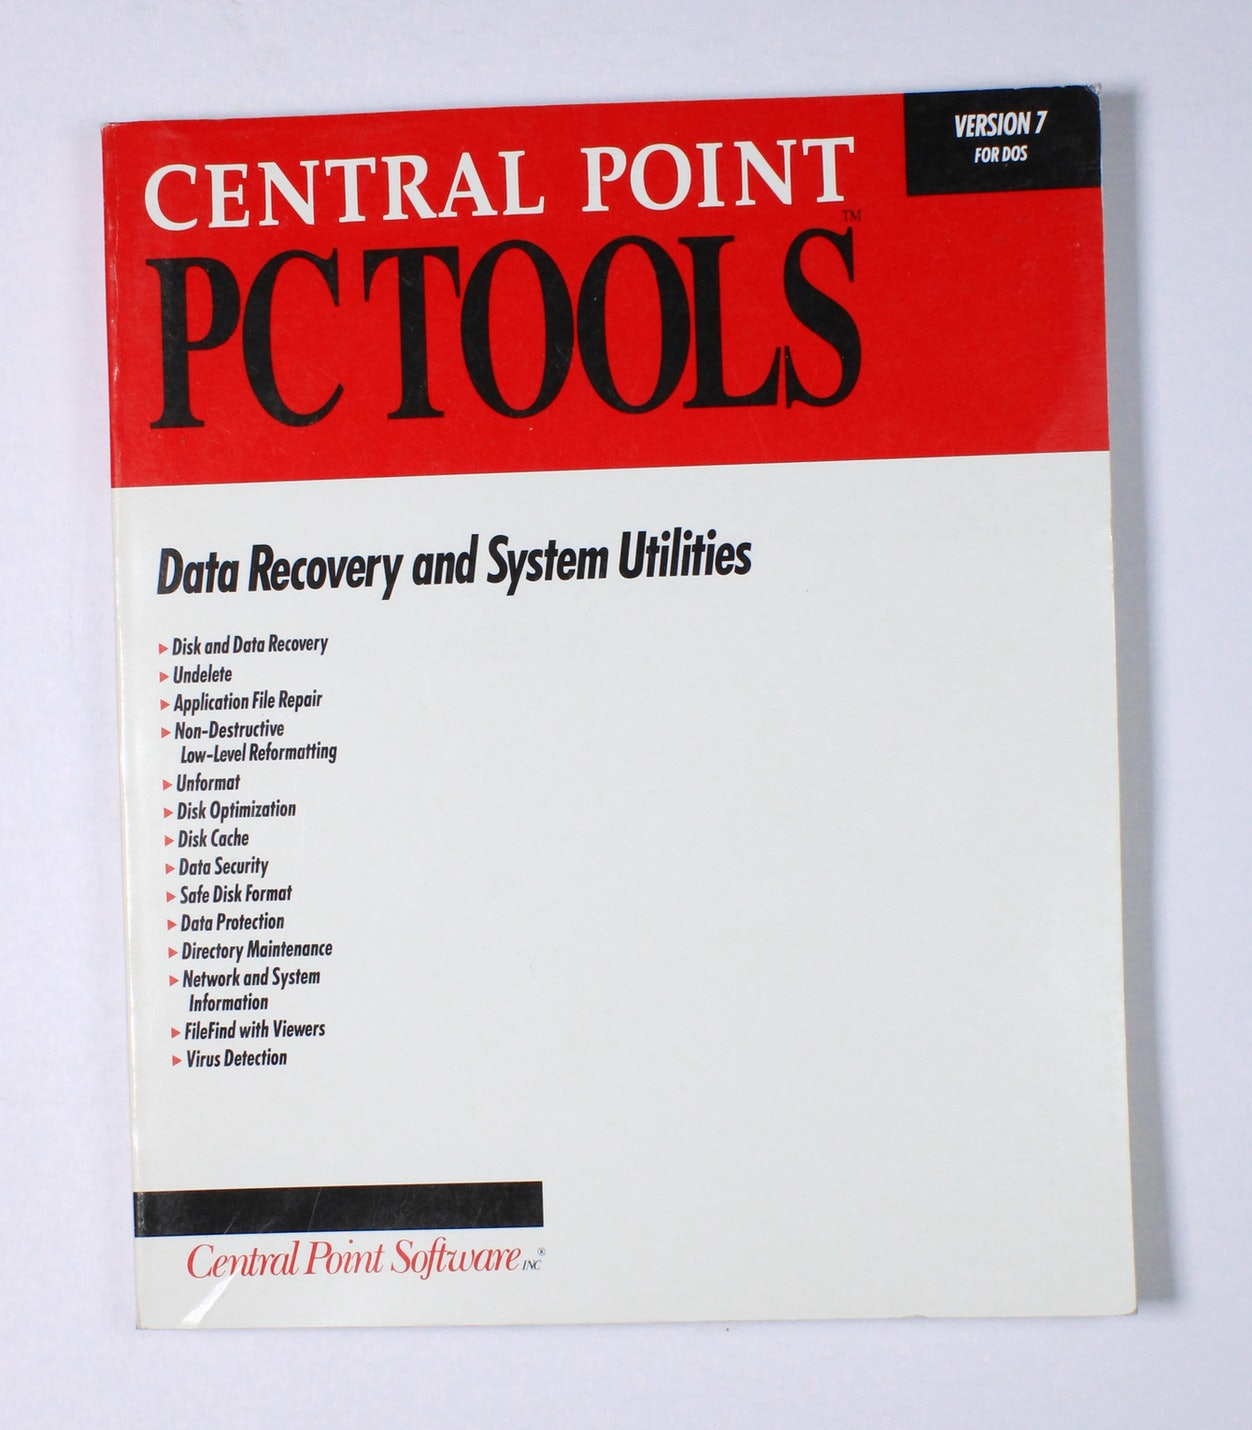 Central Point PC Tools: Data Recovery and System Utilities